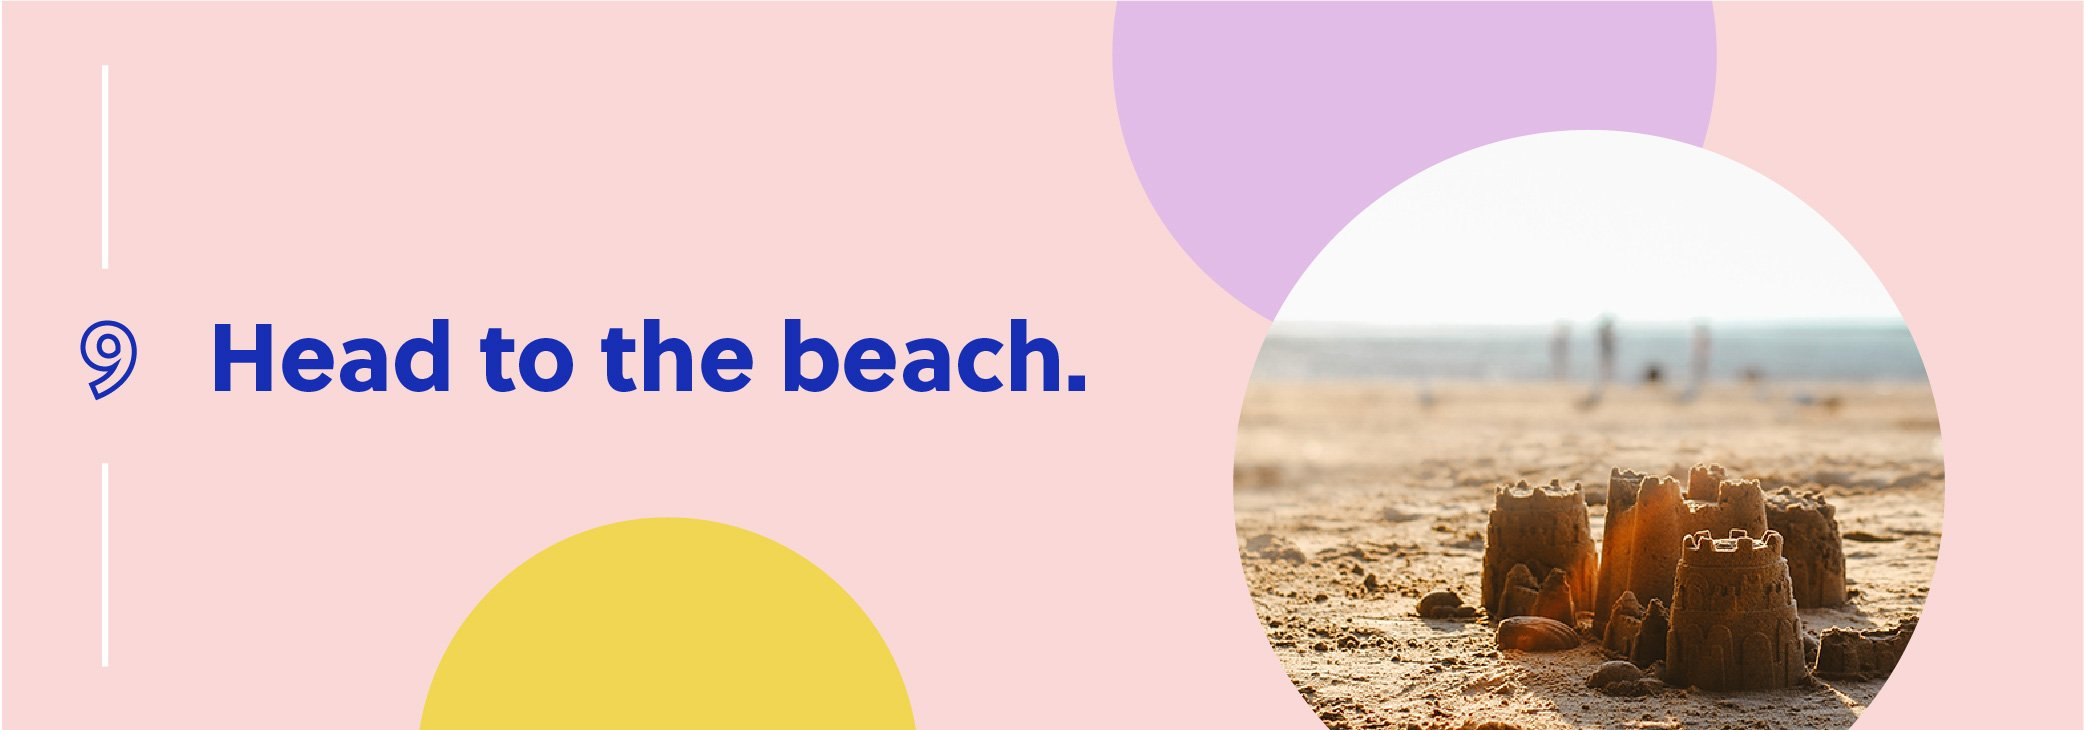 Head to the beach.